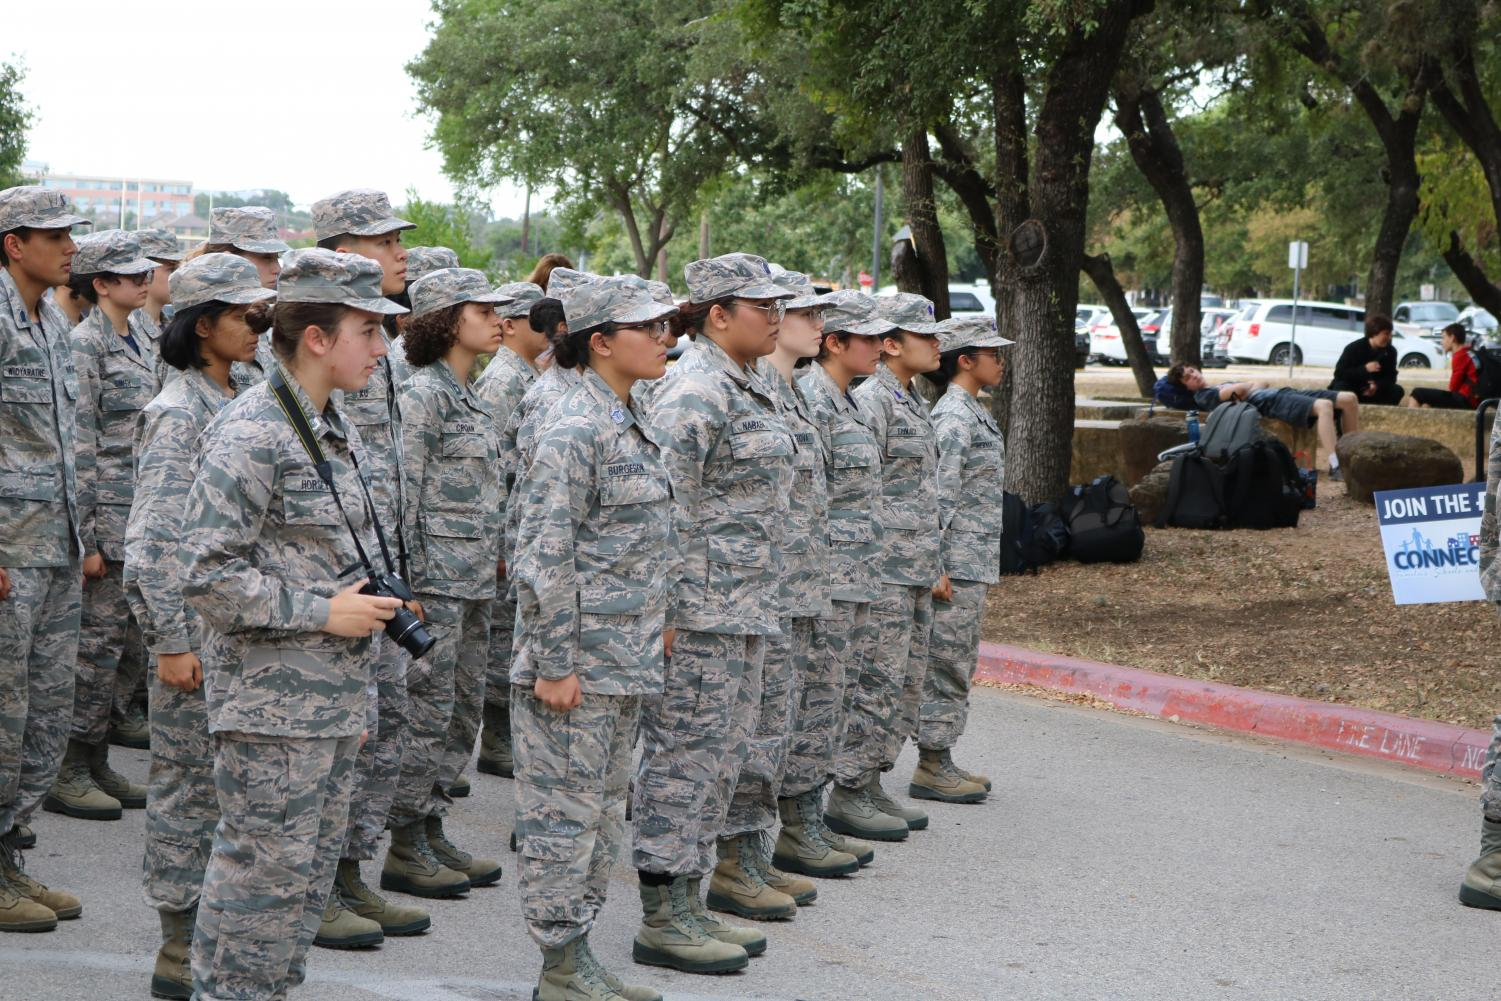 Cadets+stand+at+attention+while+the+flags+are+taken+inside.+The+upperclassmen+are+dressed+in+their+class+D+uniforms+while+freshman+are+dressed+in+class+H+uniforms.+